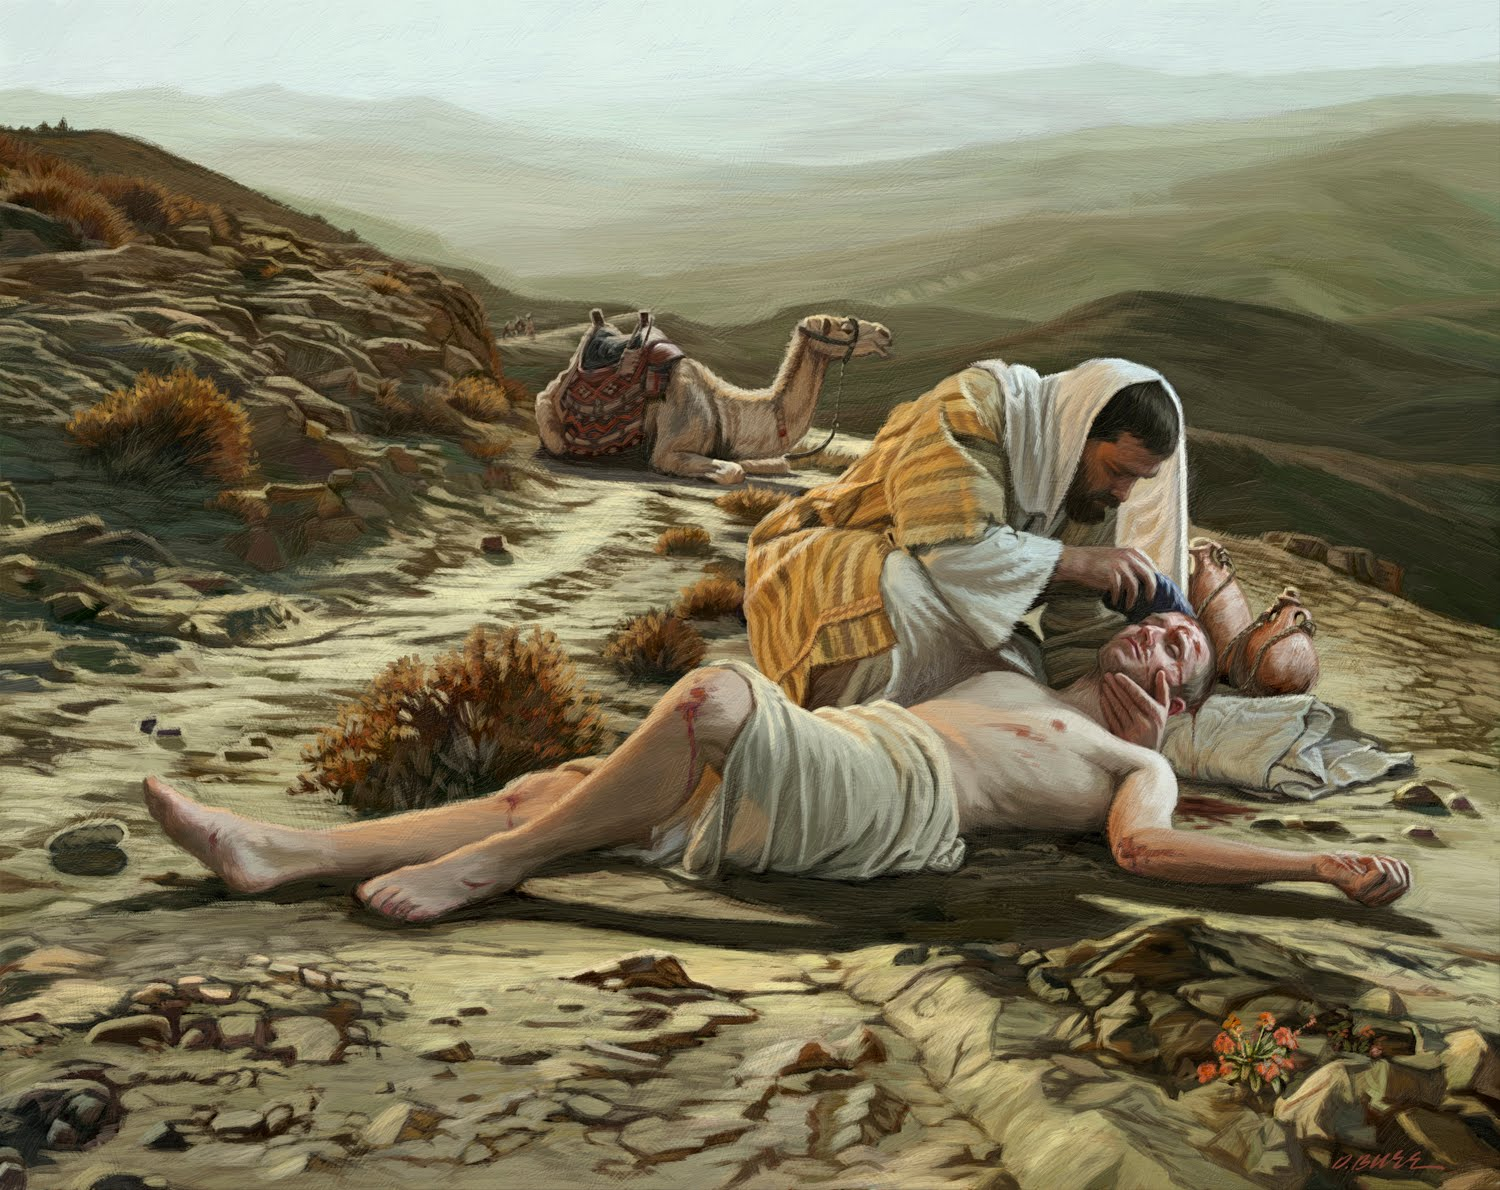 The Samaritan tending to the wounded man on the road to Jericho.